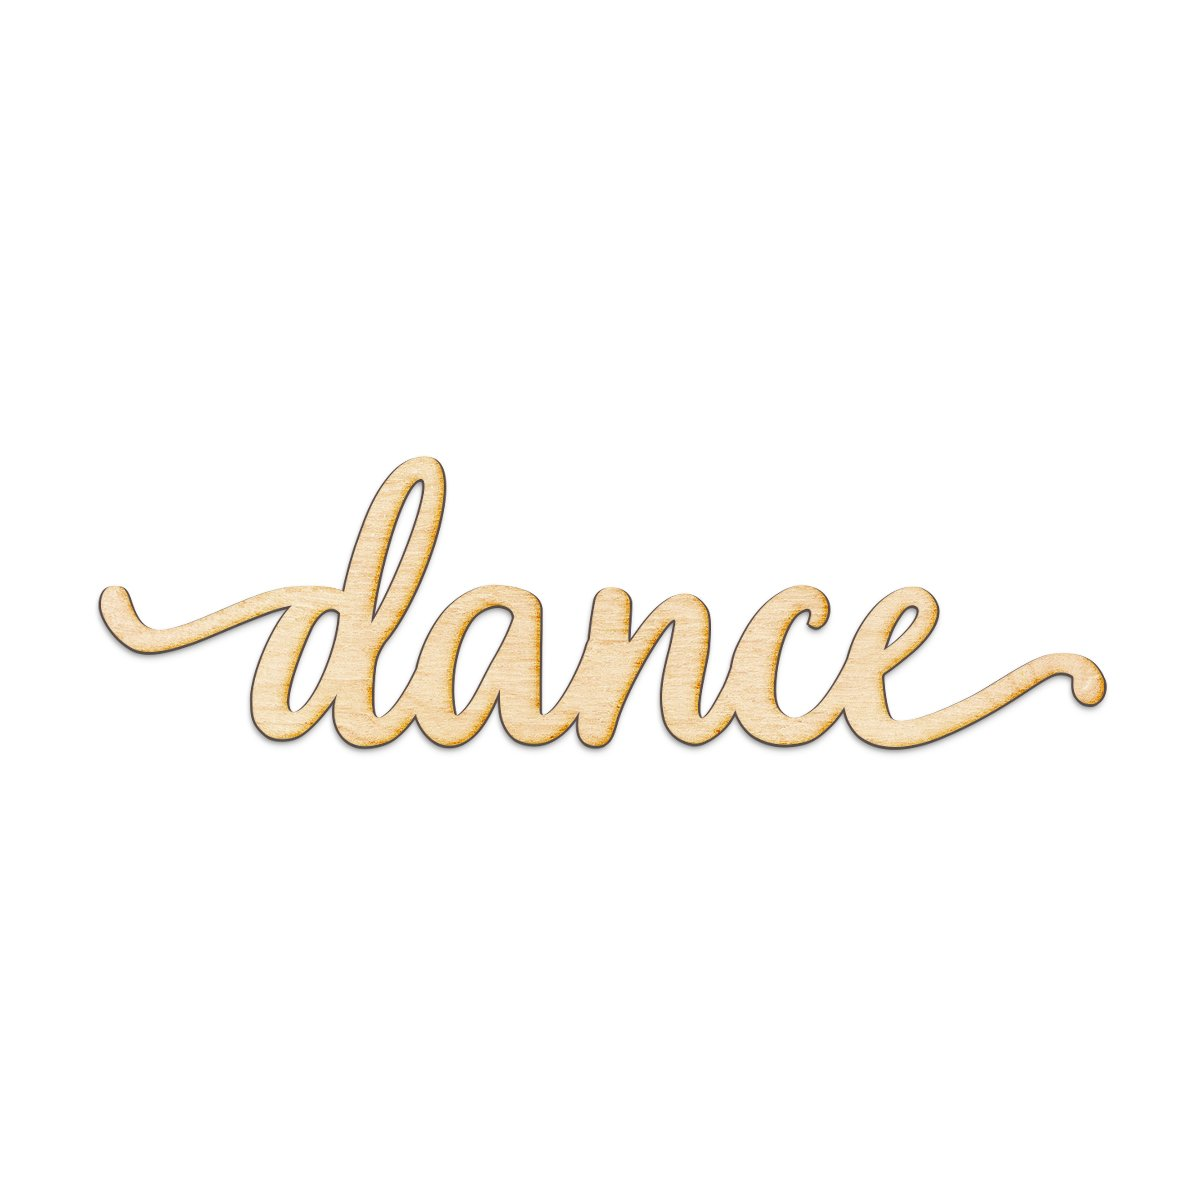 Dance Script Wood Sign Home Decor Wall Art Unfinished Charlie 8'' x 3''